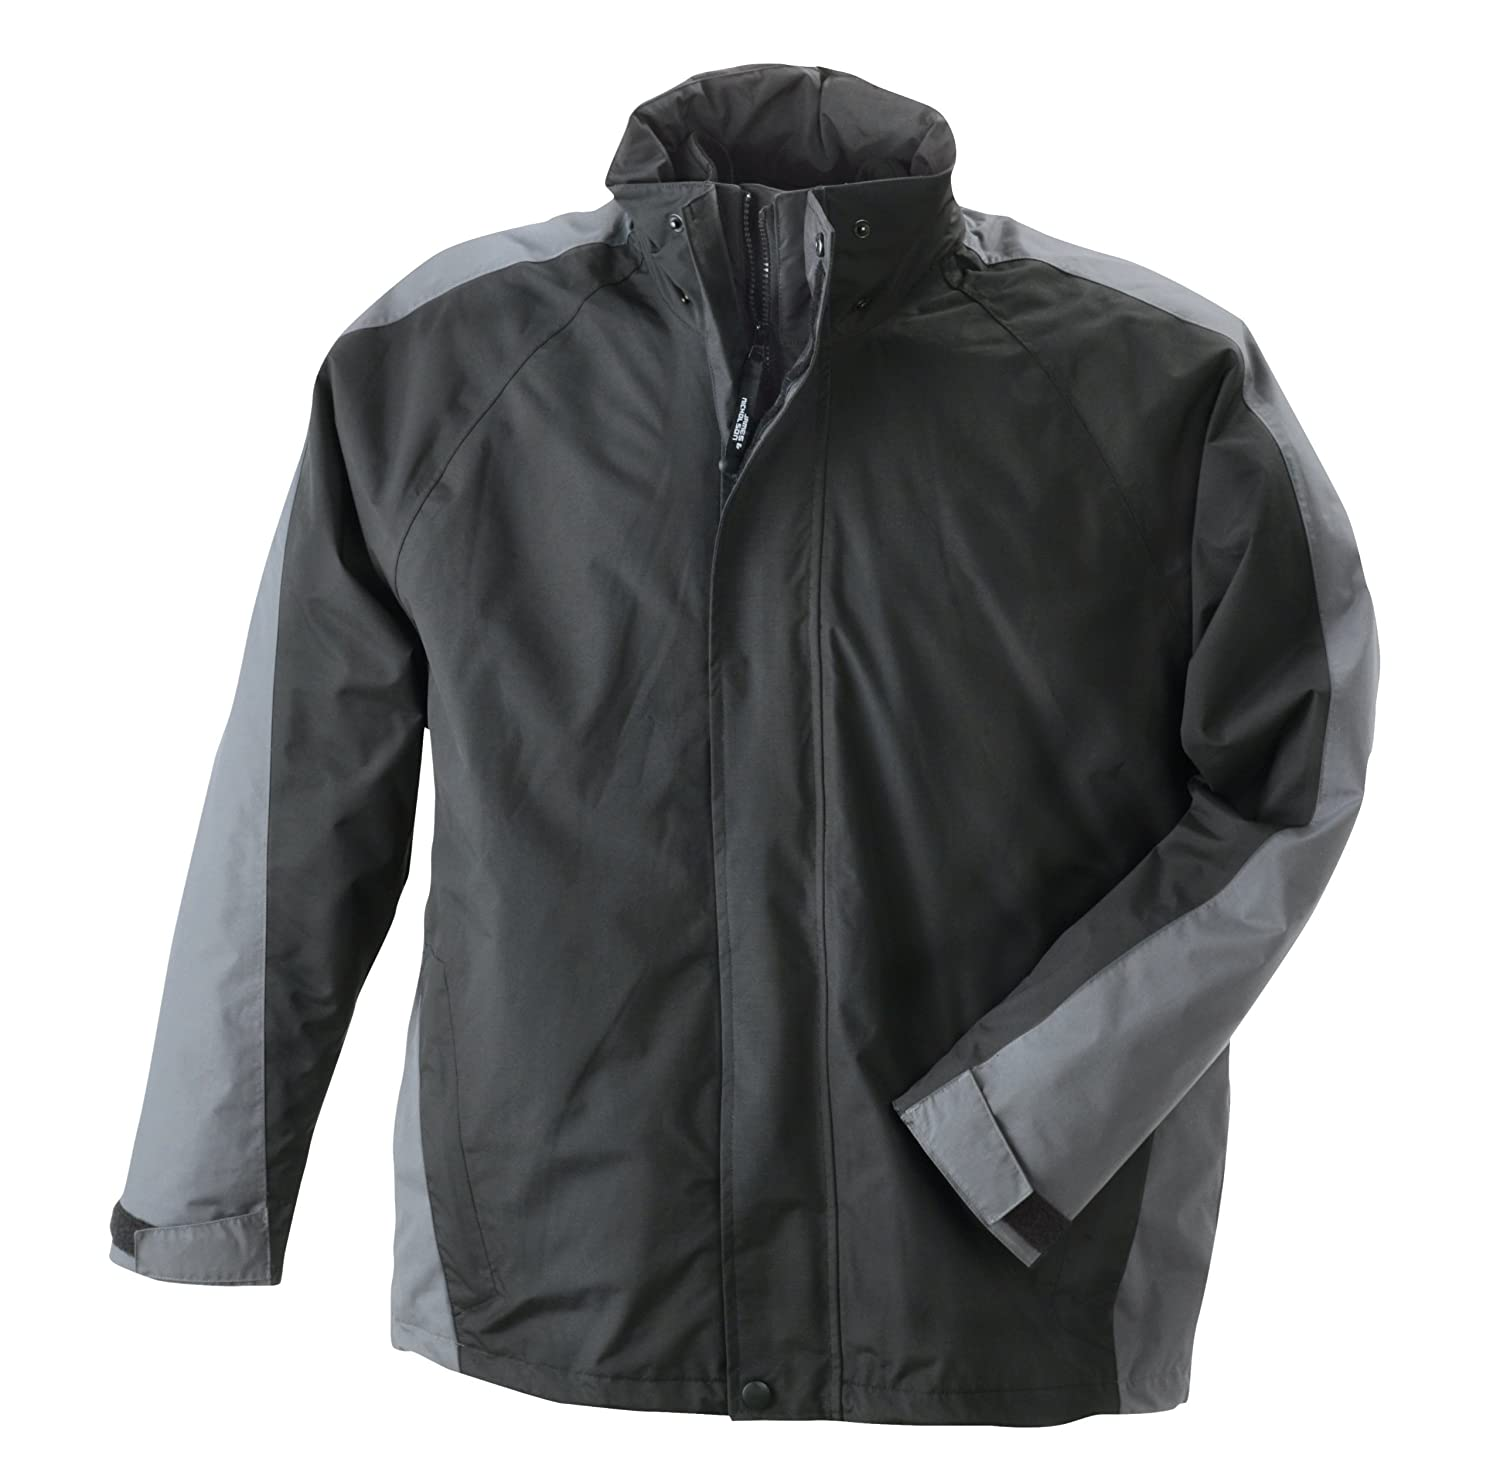 James & Nicholson Dopeljacken Two In One, Chaqueta para Hombre